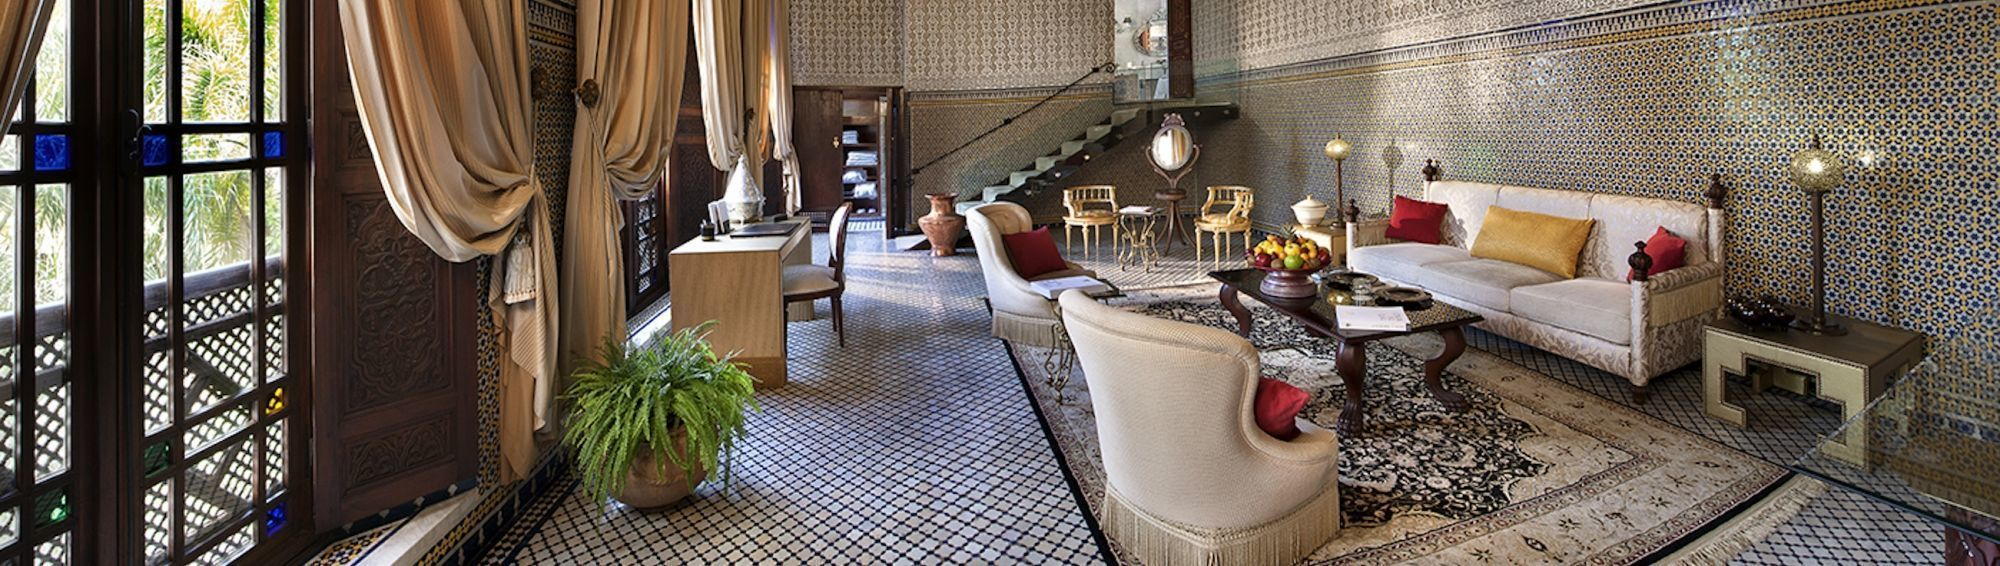 Riad Fes Hotel - Royal Suite